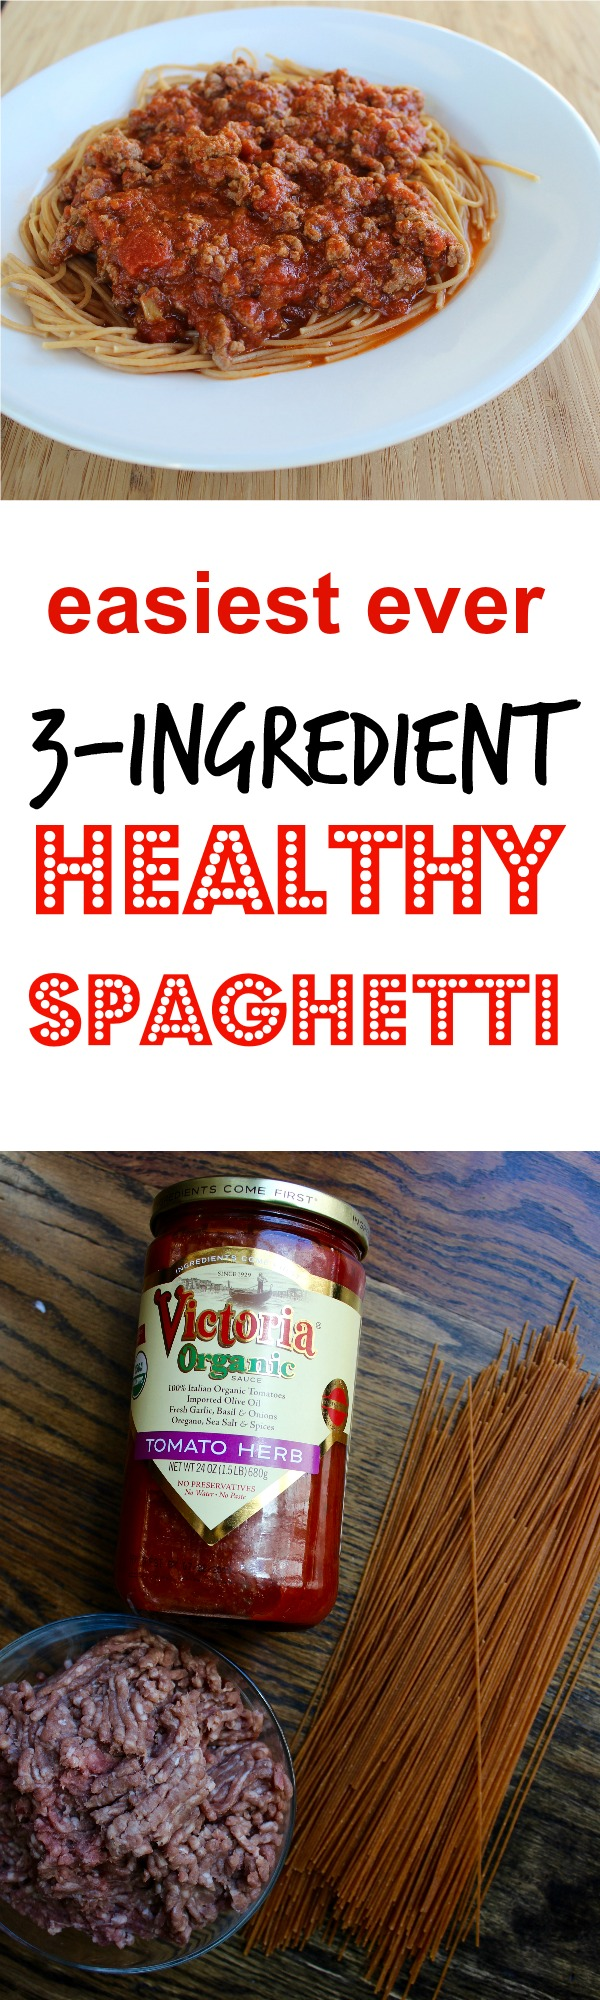 easiest ever 3 ingredient healthy spaghetti